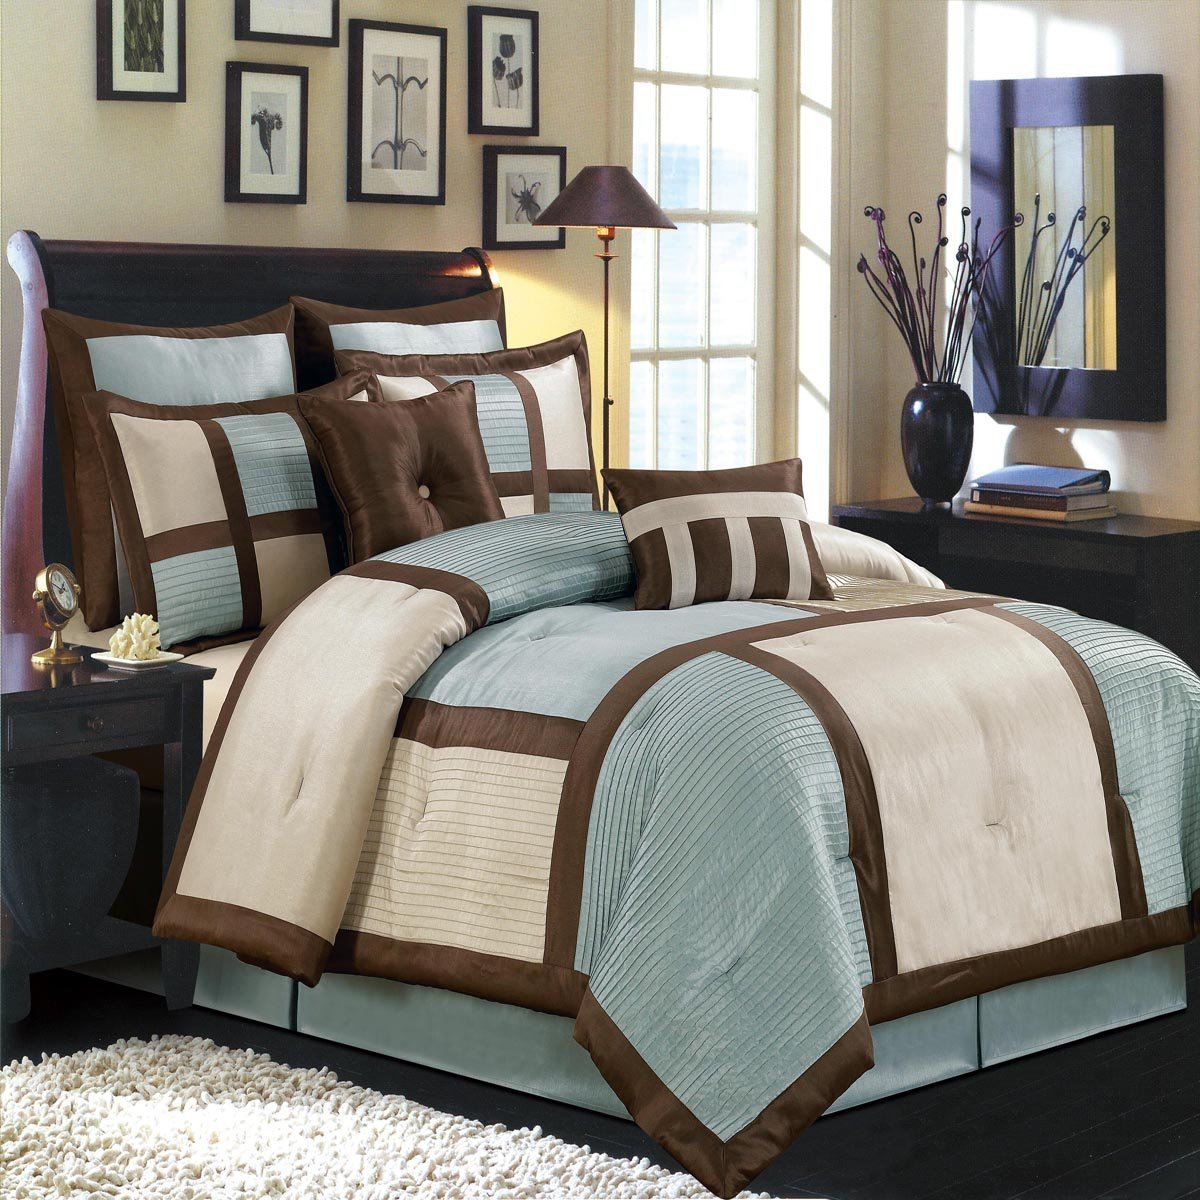 Brown And Teal Bedding Green And Brown Bedding With Cream Accent - Blue and brown comforter sets